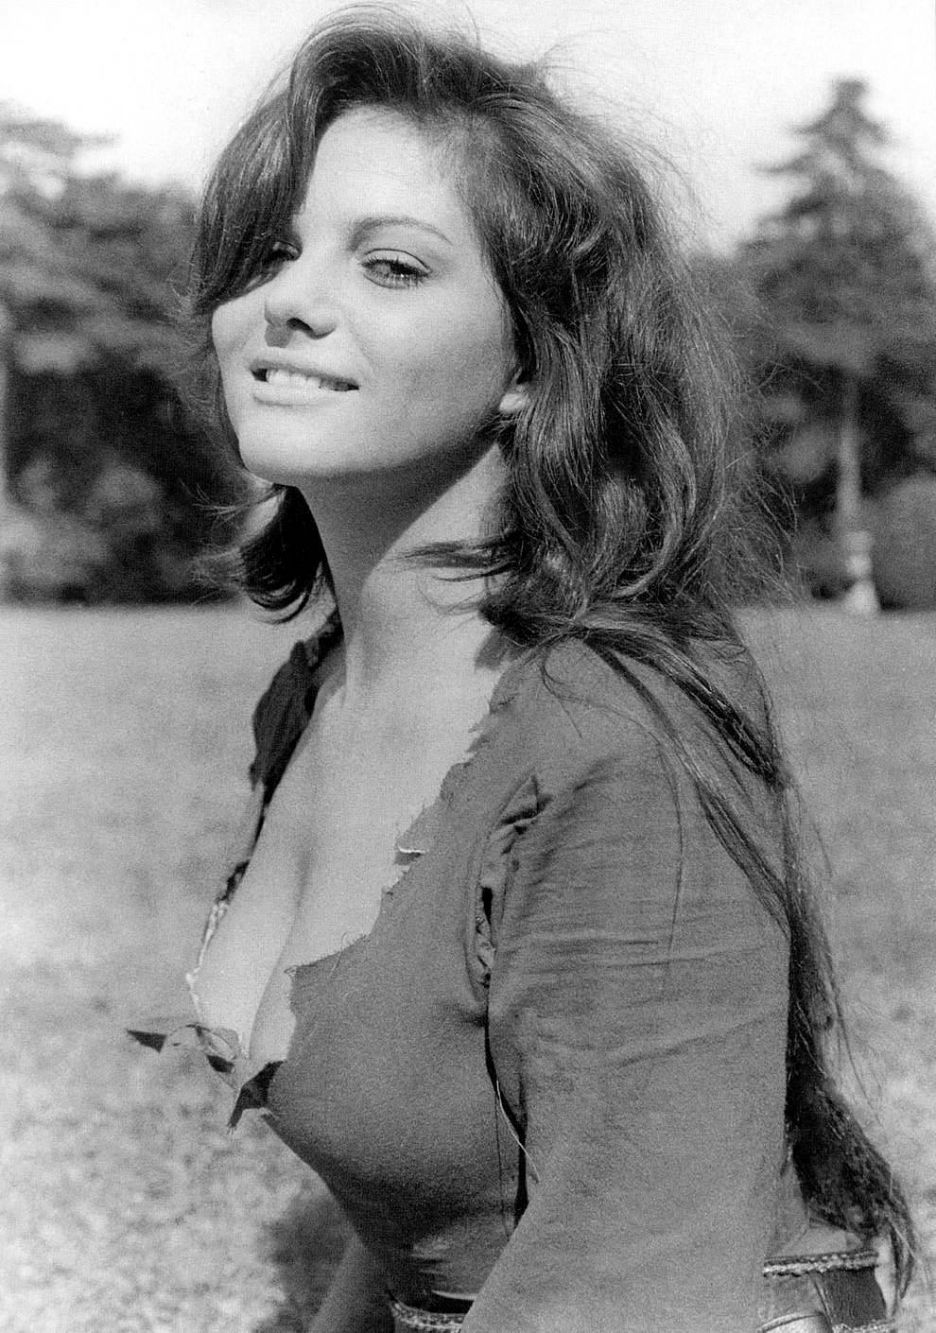 Claudia Cardinale (born 1938 (born and raised in Tunis, Tunisia Claudia Cardinale (born 1938 (born and raised in Tunis, Tunisia new photo